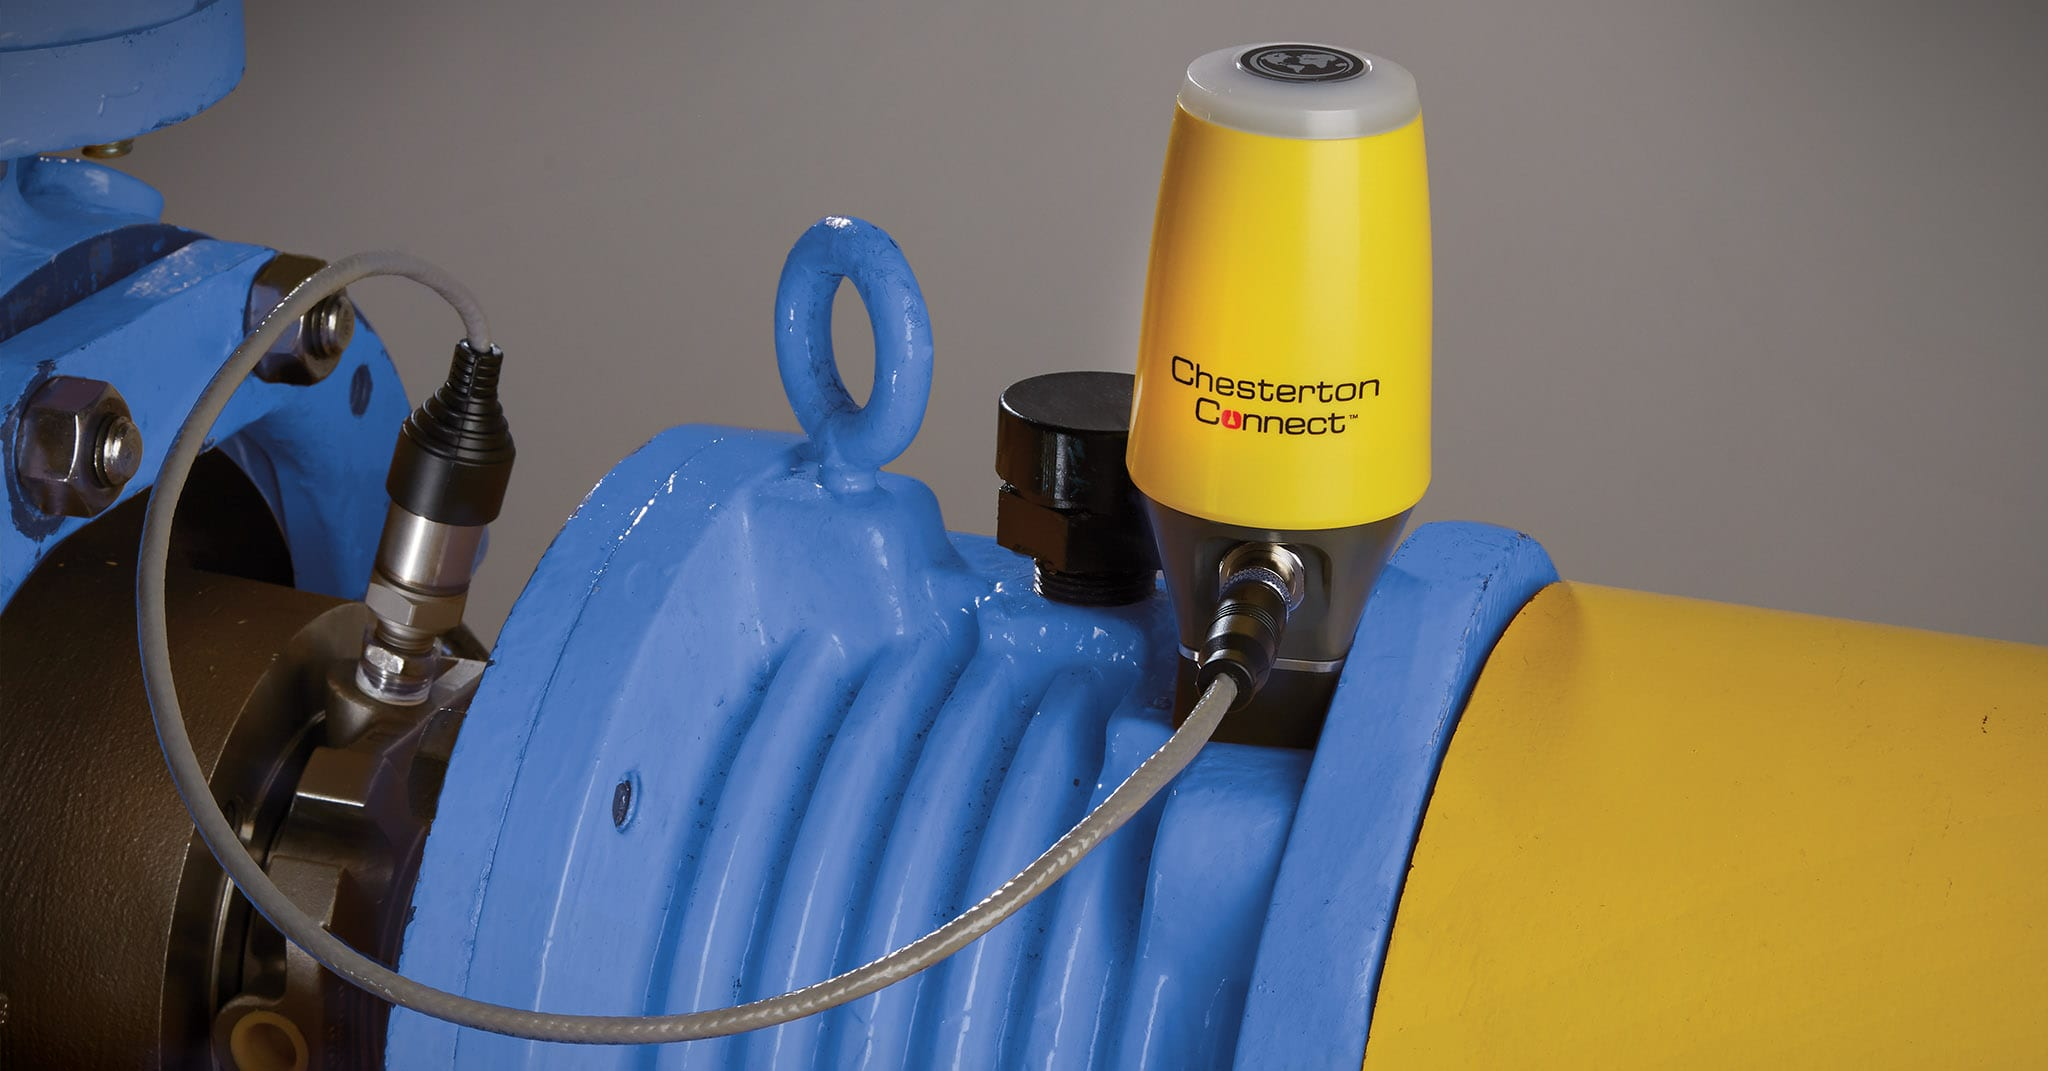 Chesterton connect equipment image